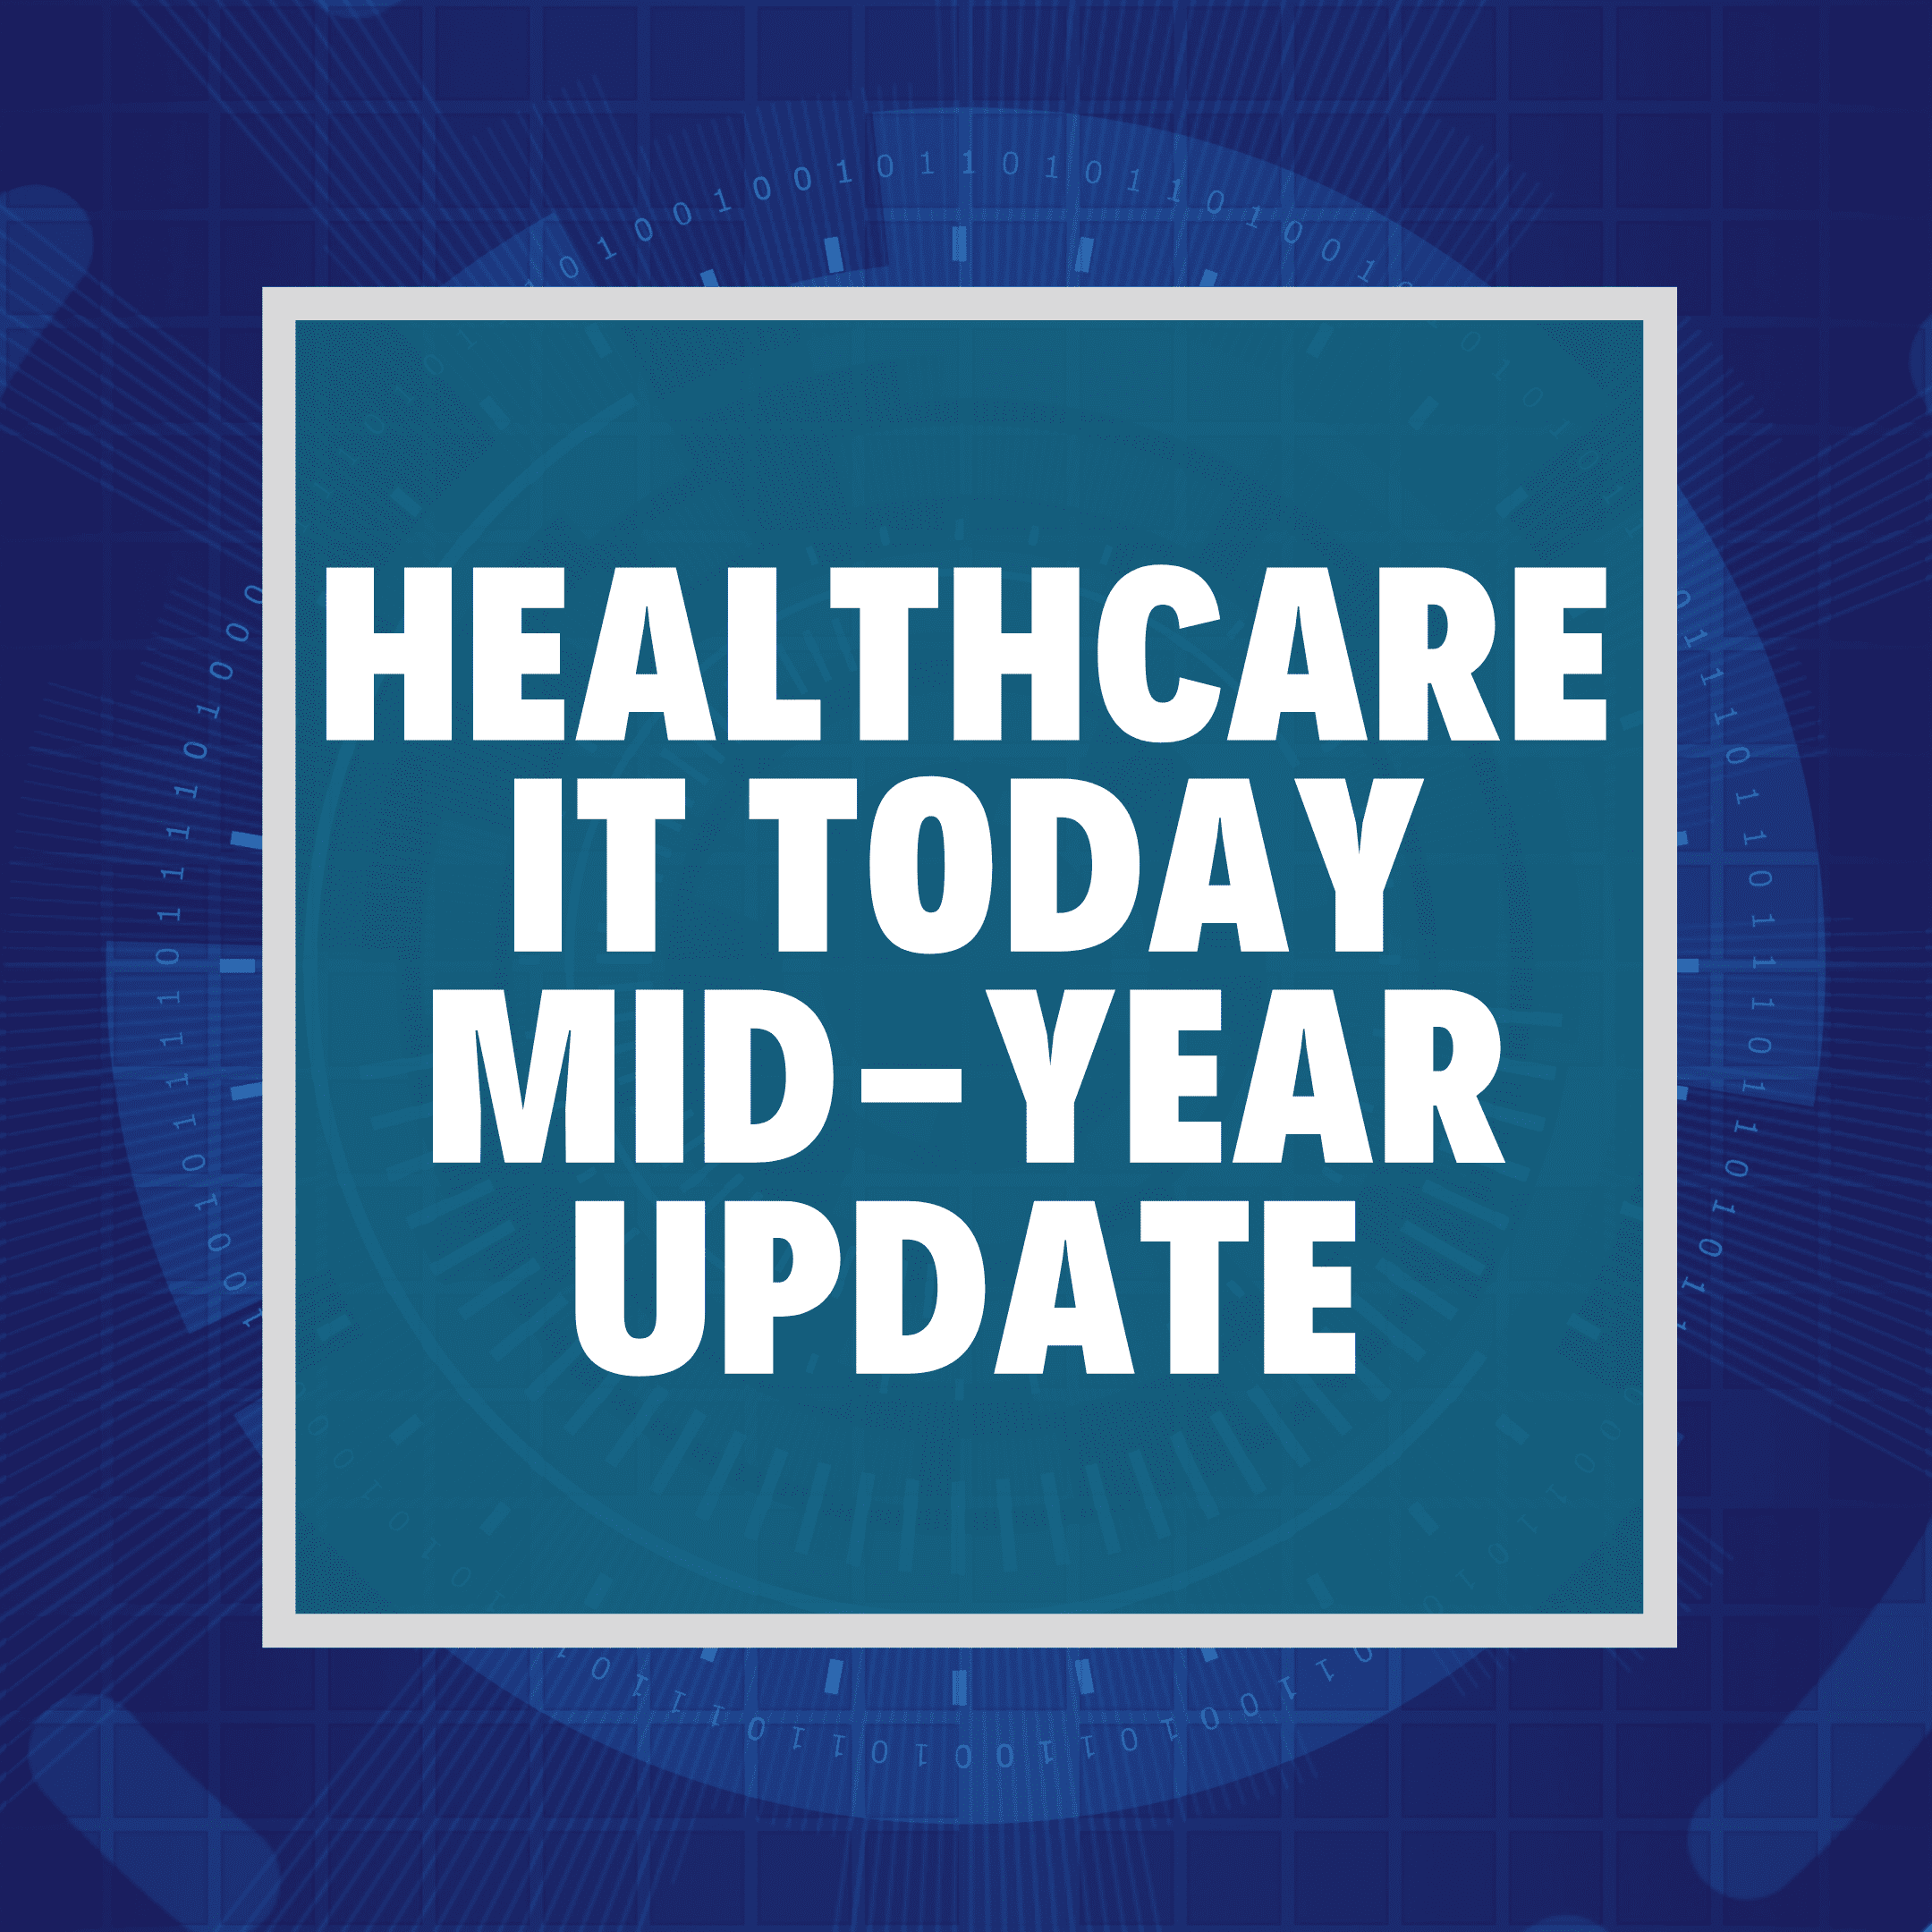 Healthcare IT Today Mid-Year Update